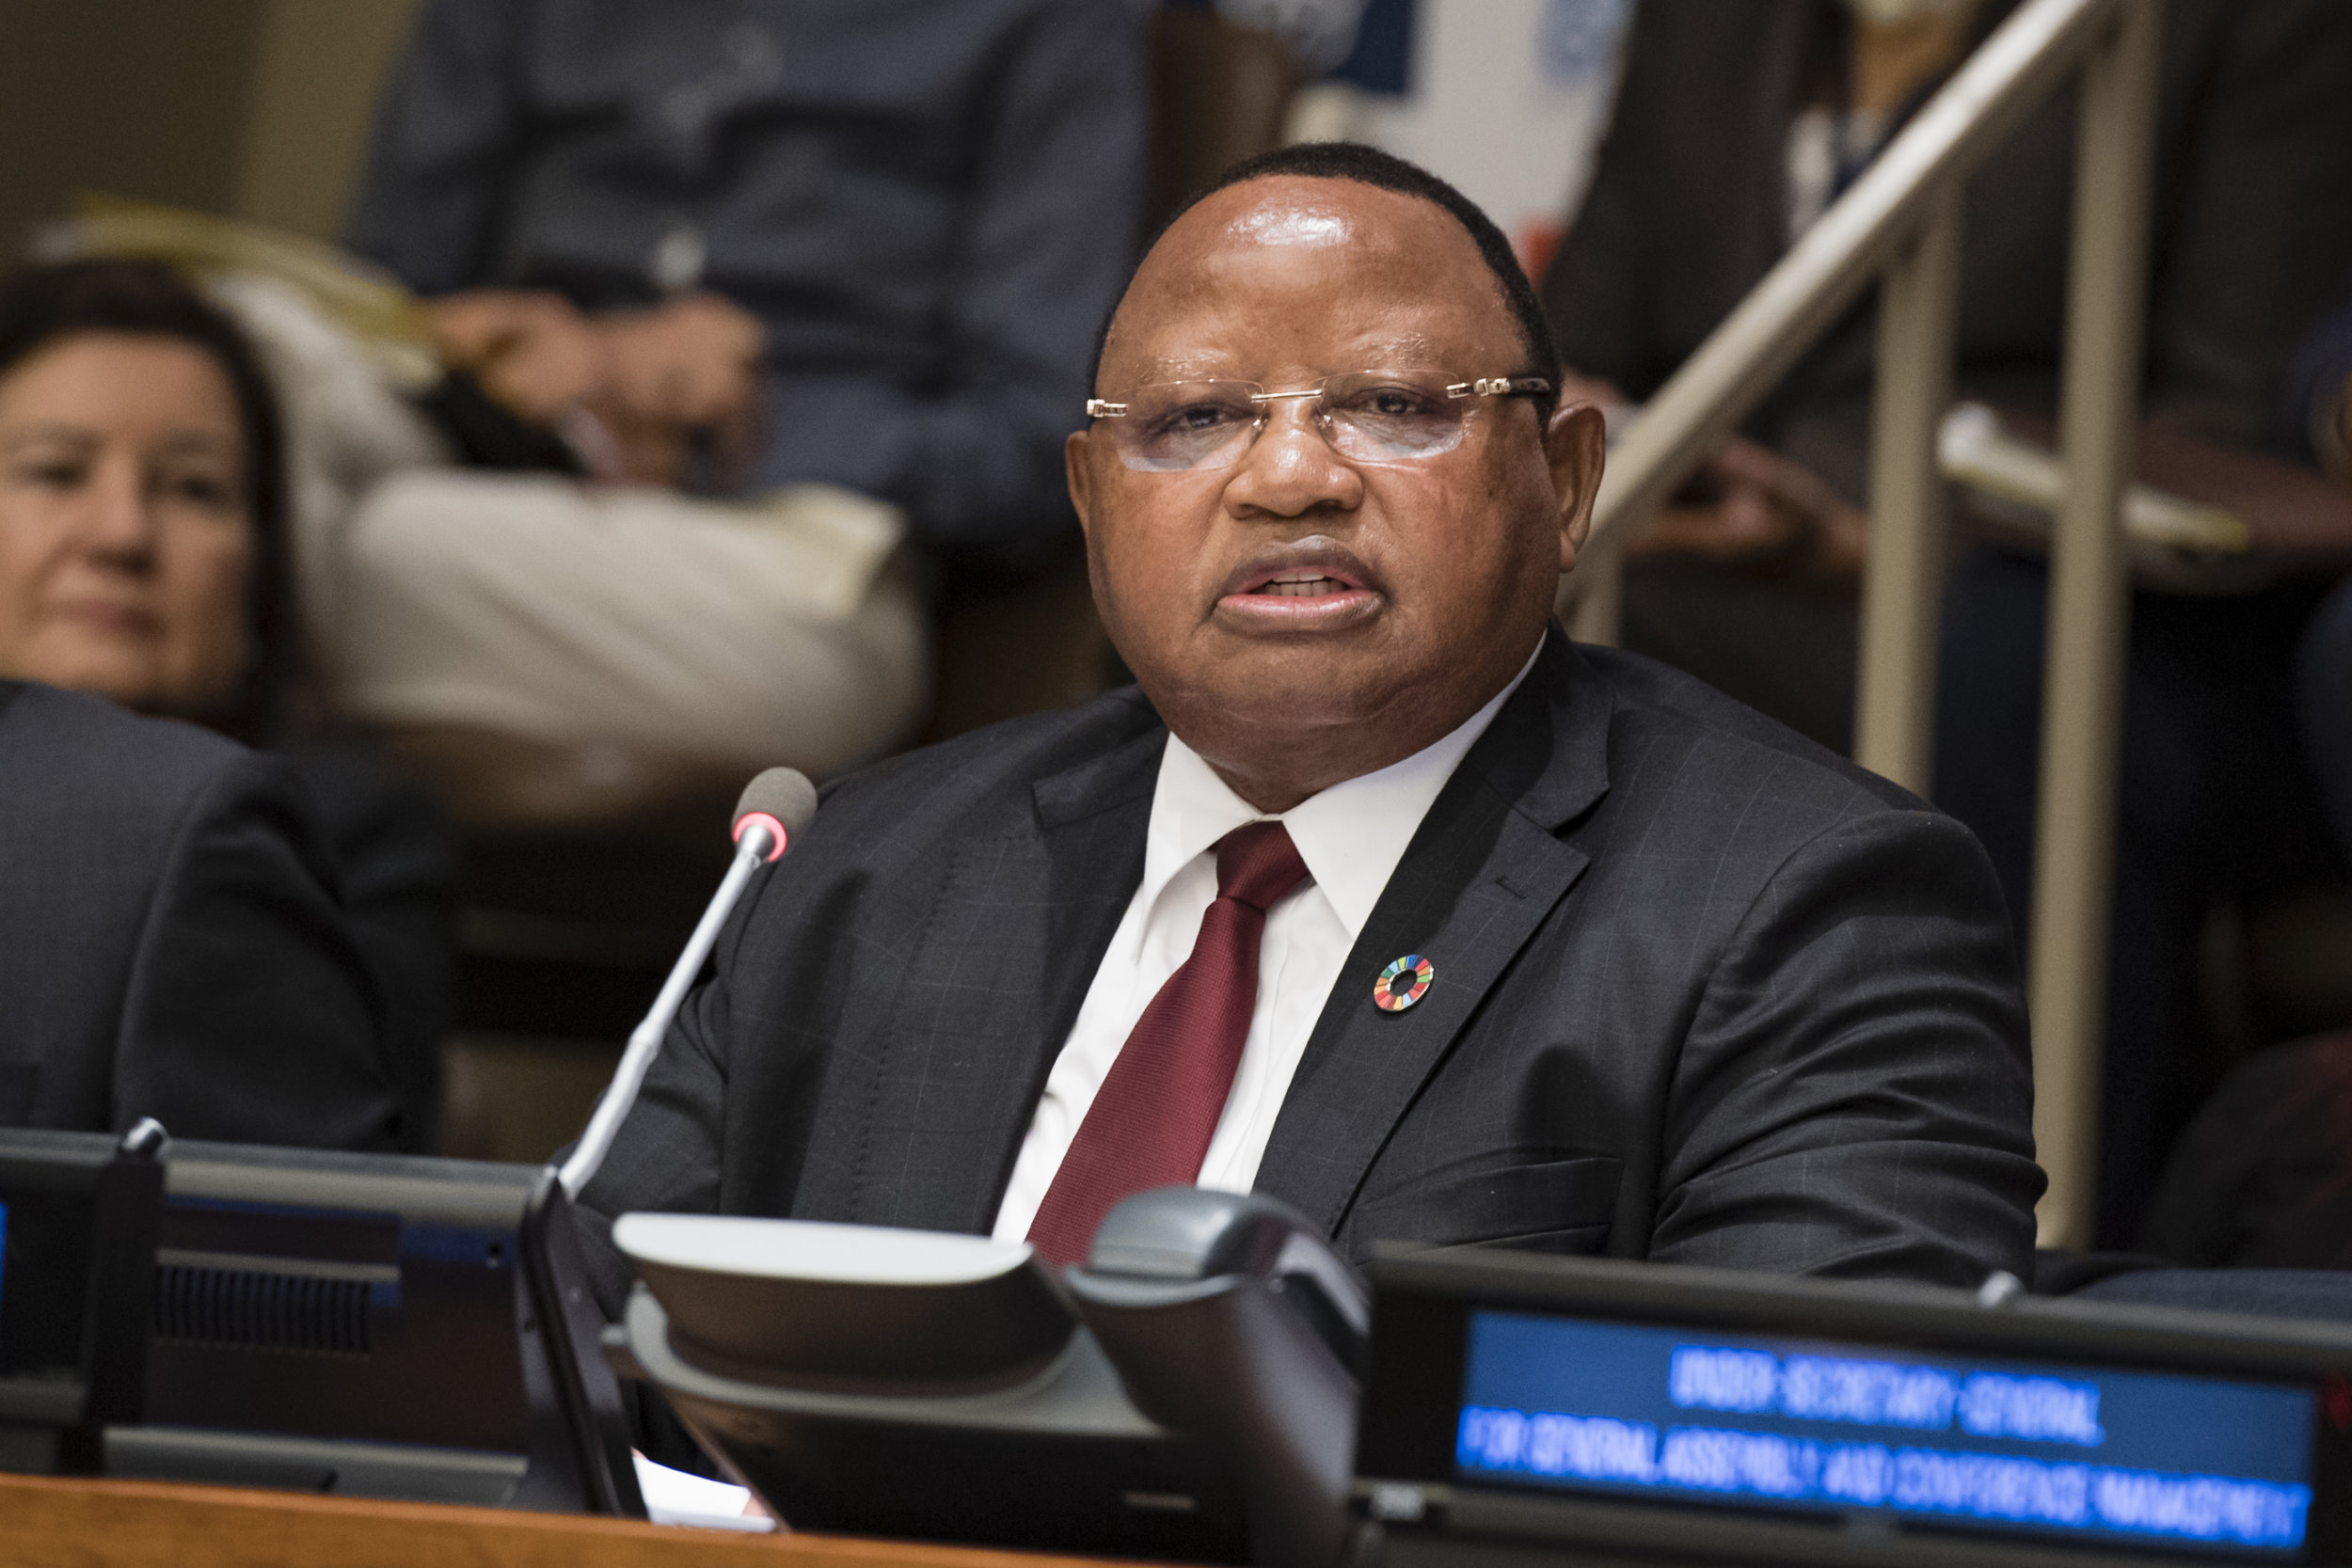 Frederick Musiiwa Makamure Shava, President of the Economic and Social Council, makes remarks during the opening of the Ministerial segment of the High-Level Political Forum on Sustainable Development. Photo courtesy of UN Photo.